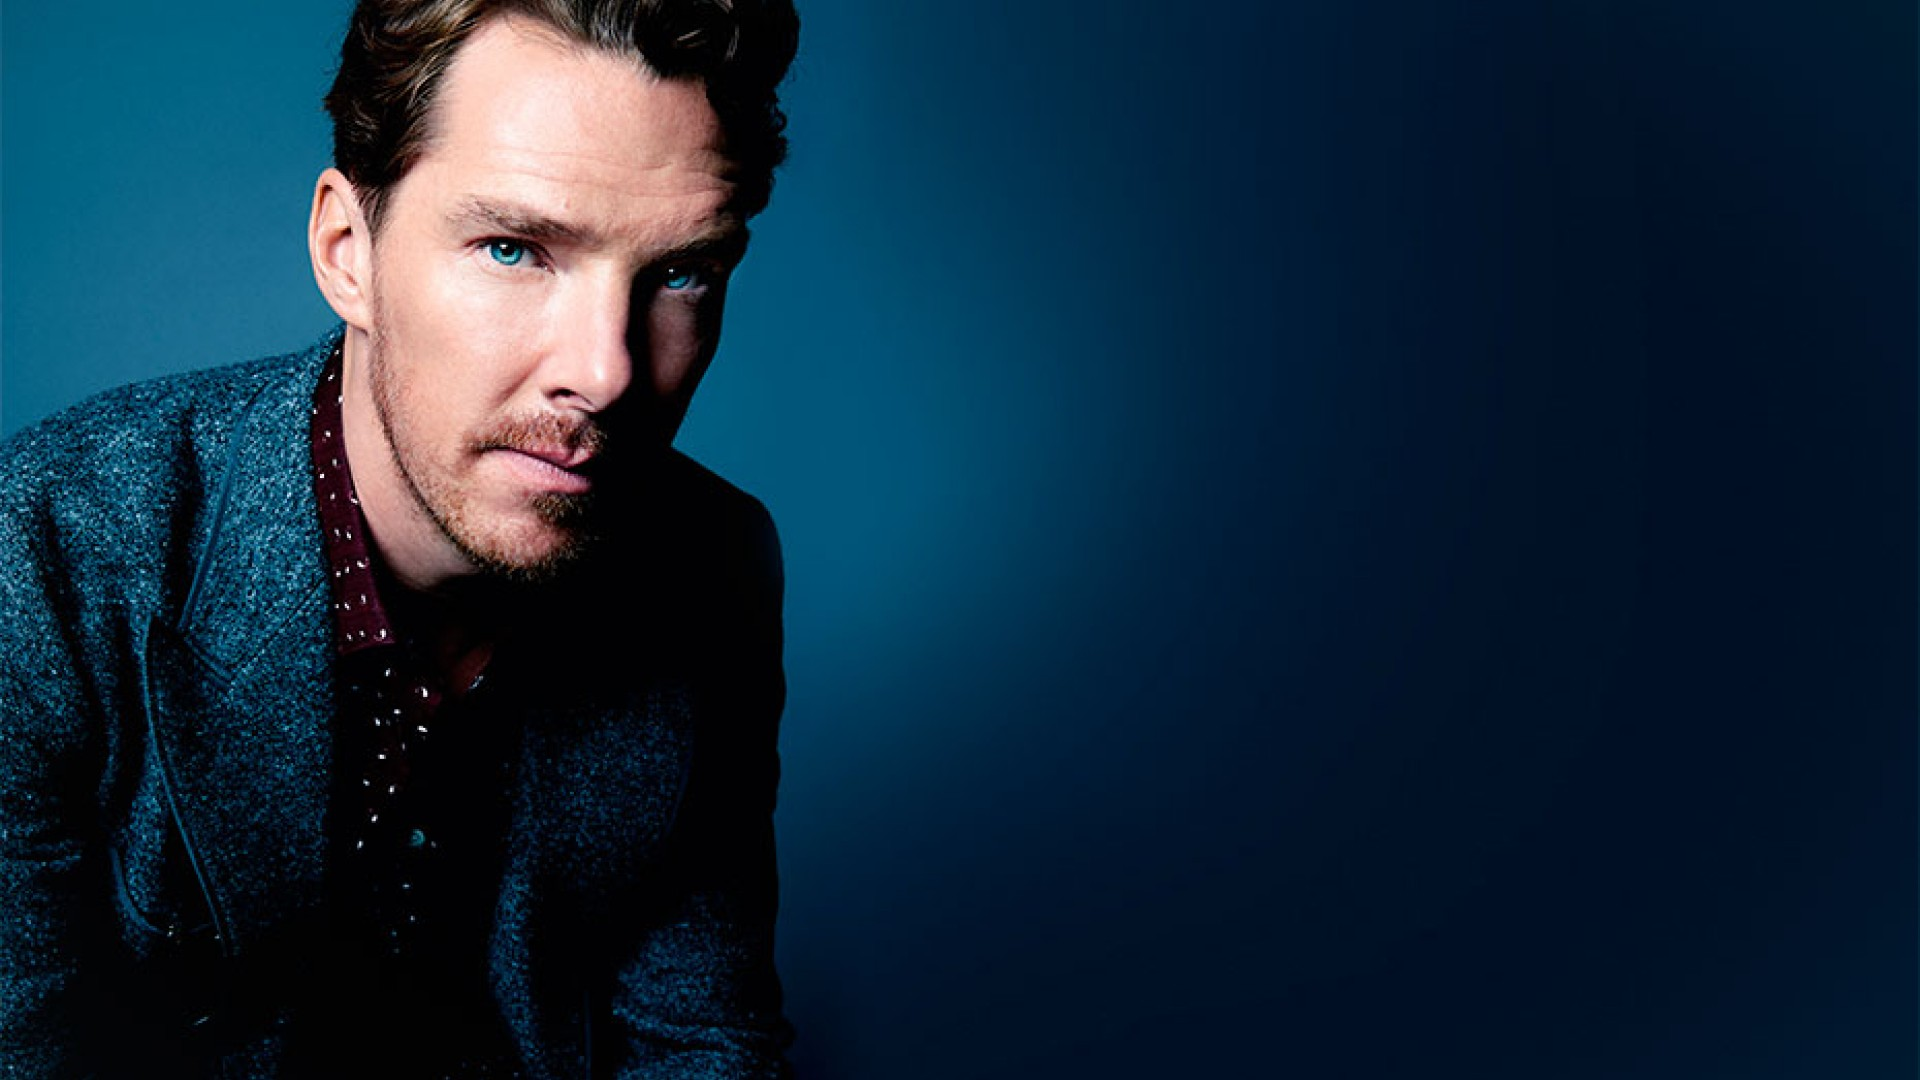 Benedict Cumberbatch on Sherlock Season 5 Renewal or Cancelation